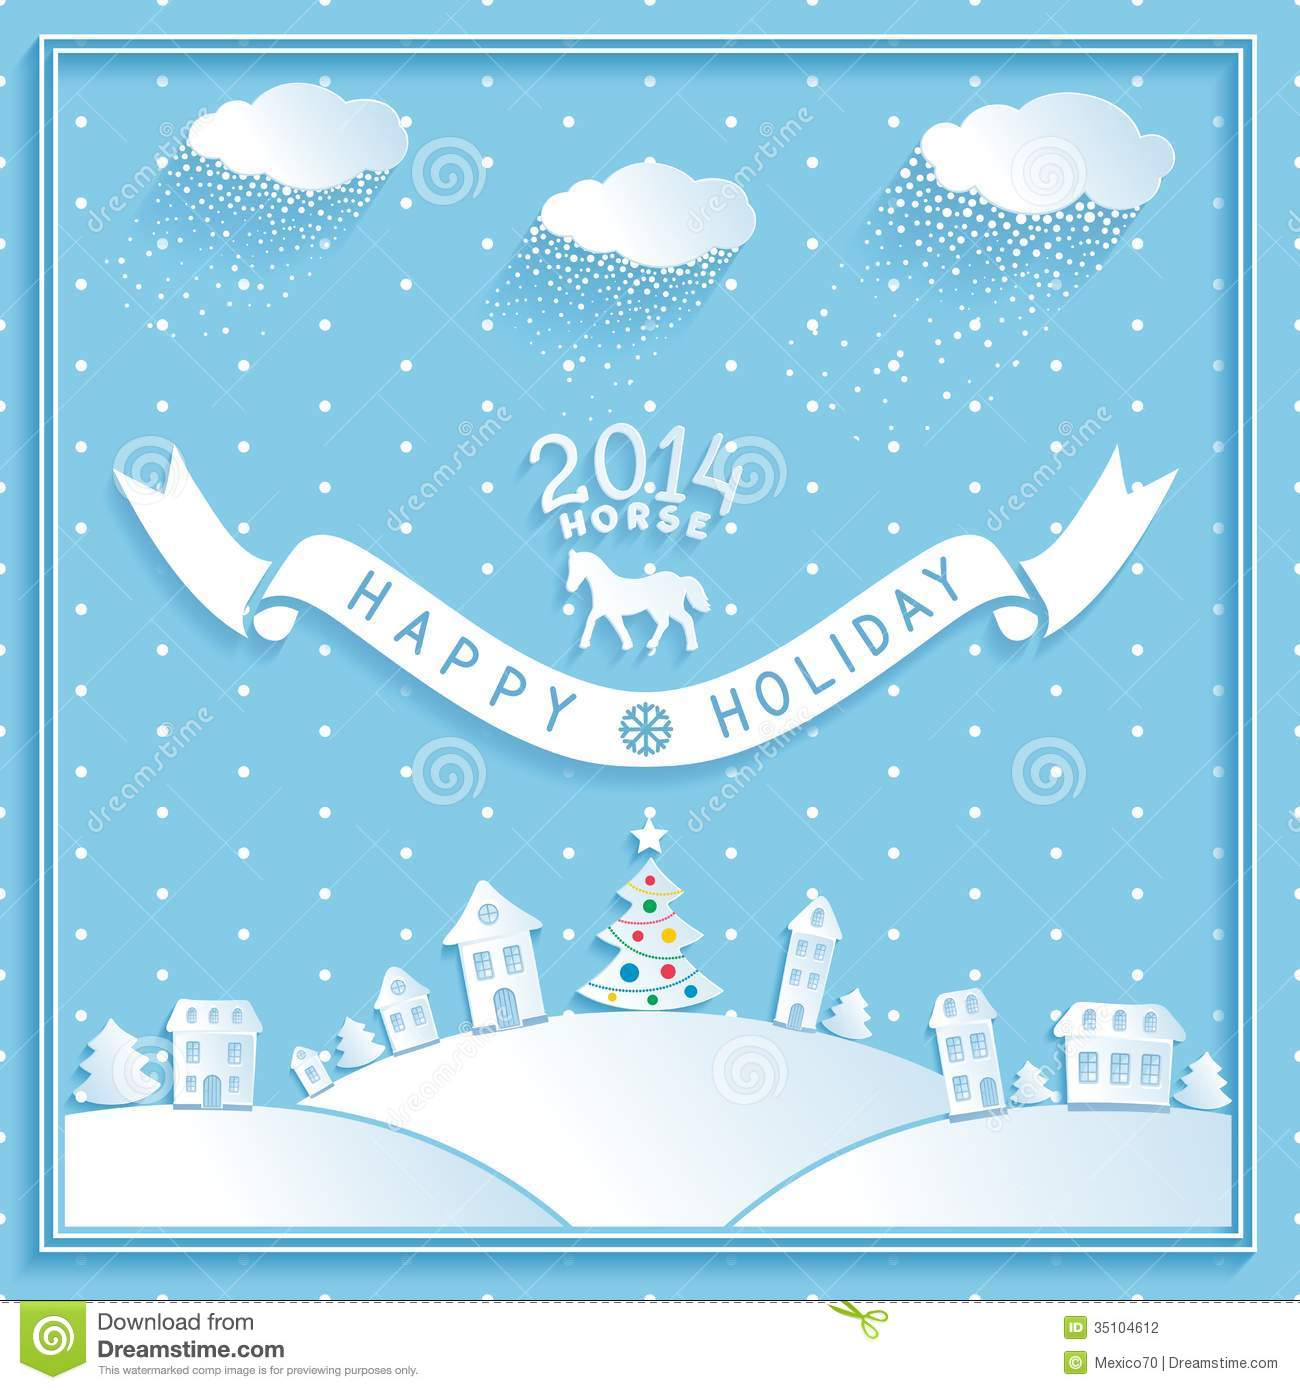 Winter holiday greeting cards cute snowman stock vector image of winter holiday greeting cards download m4hsunfo